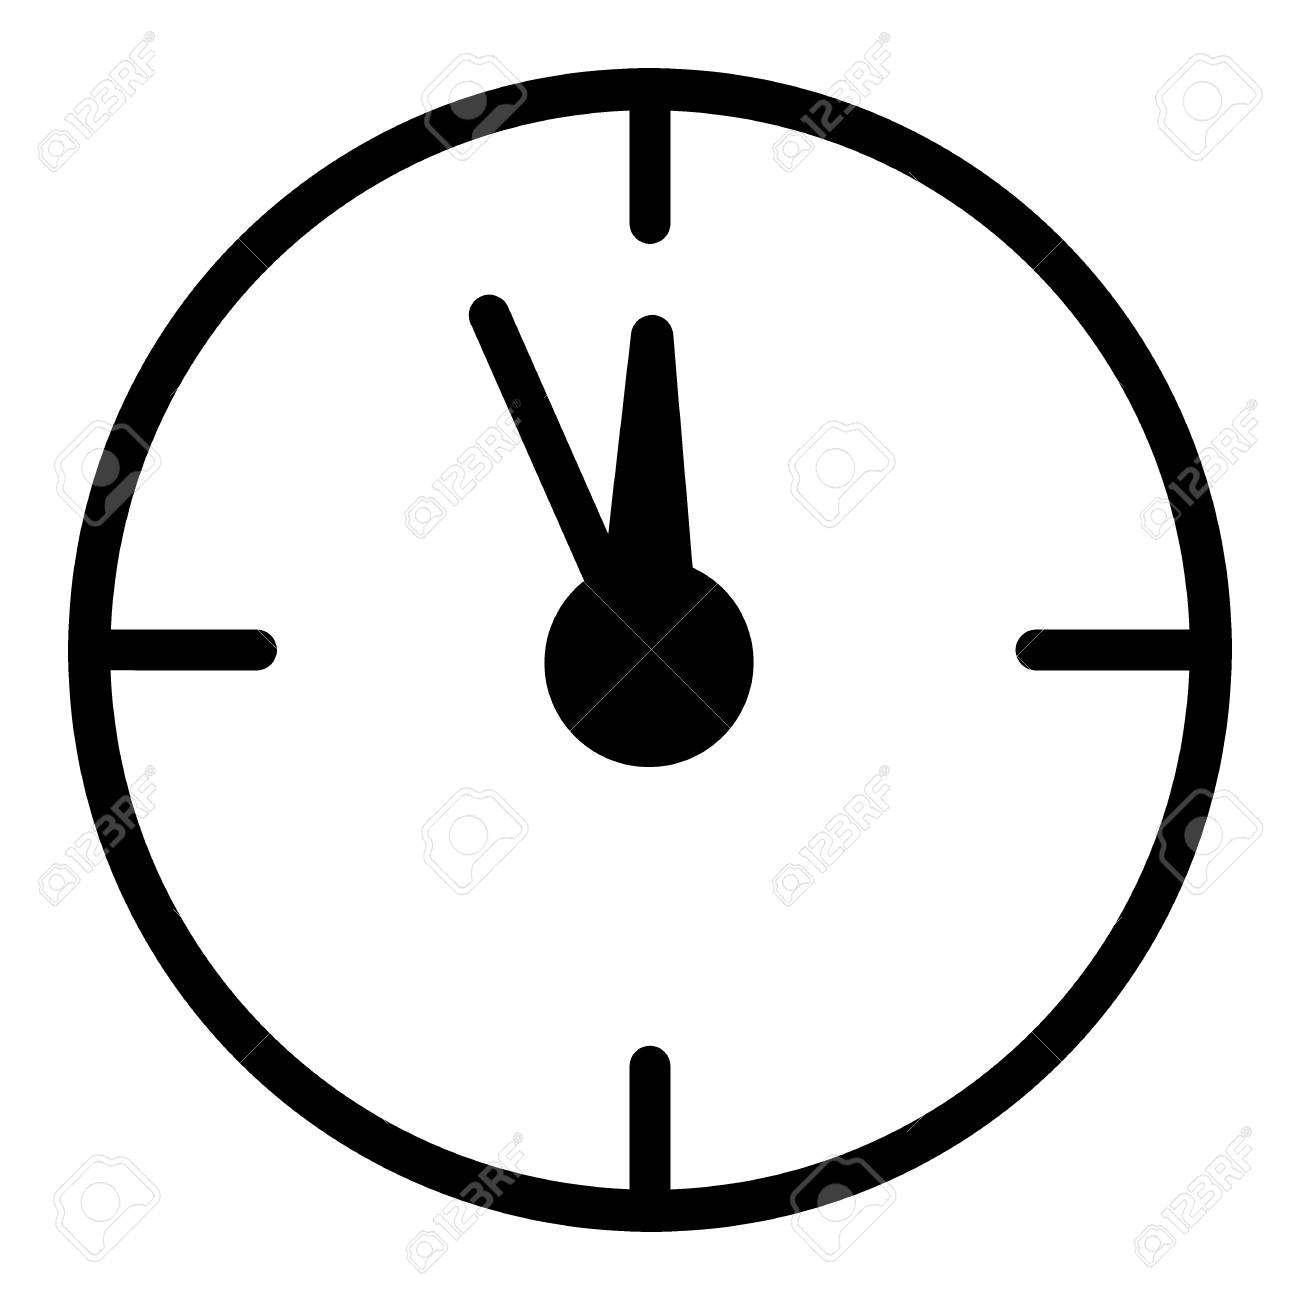 12 oclock Christmas New Year Flat Icon On White Background. Christmass time vector icon. Clock linear contour icon. - 93269562